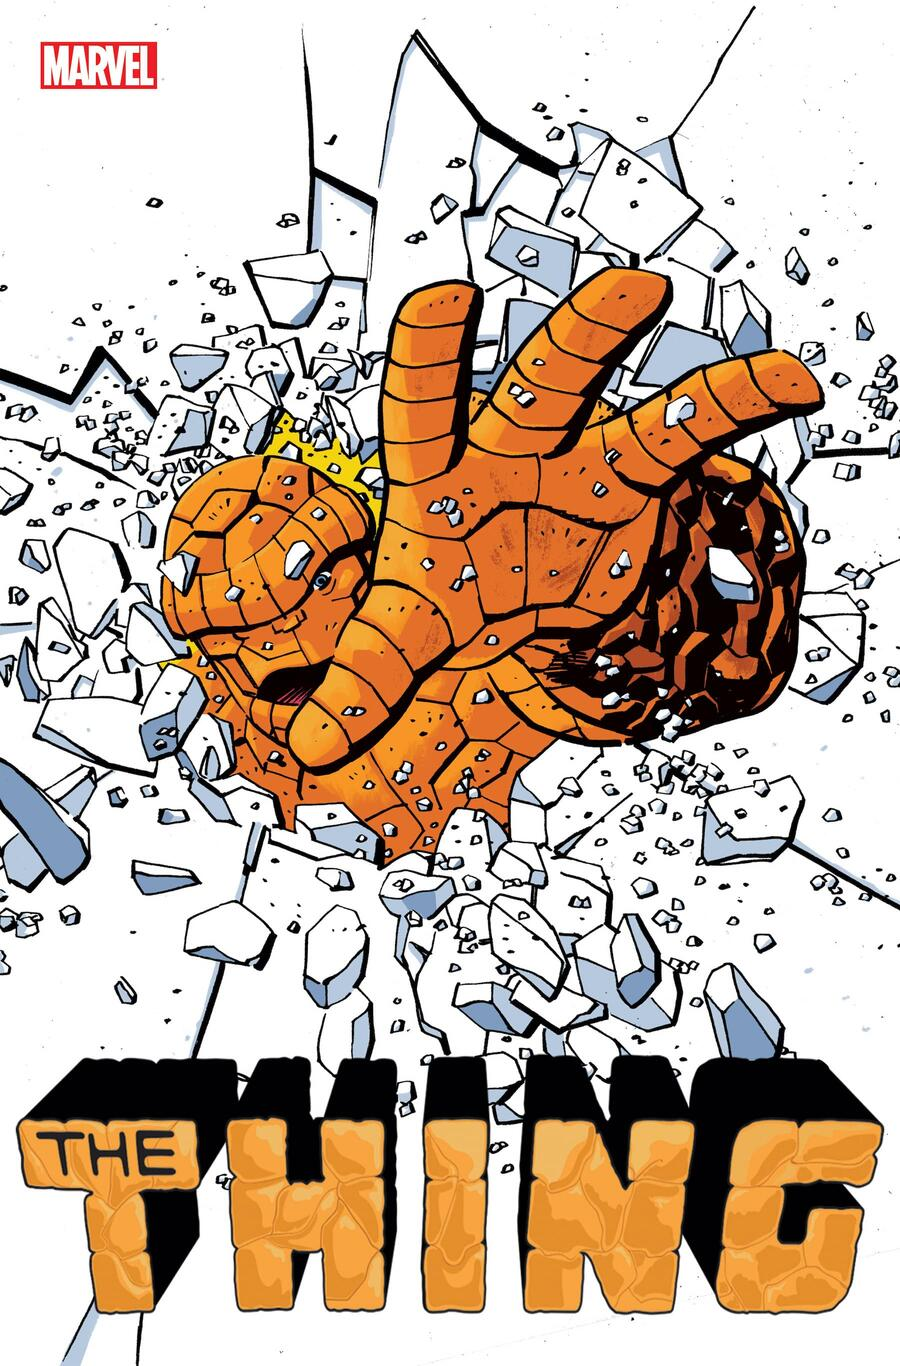 THE THING #1 cover by Tom Reilly